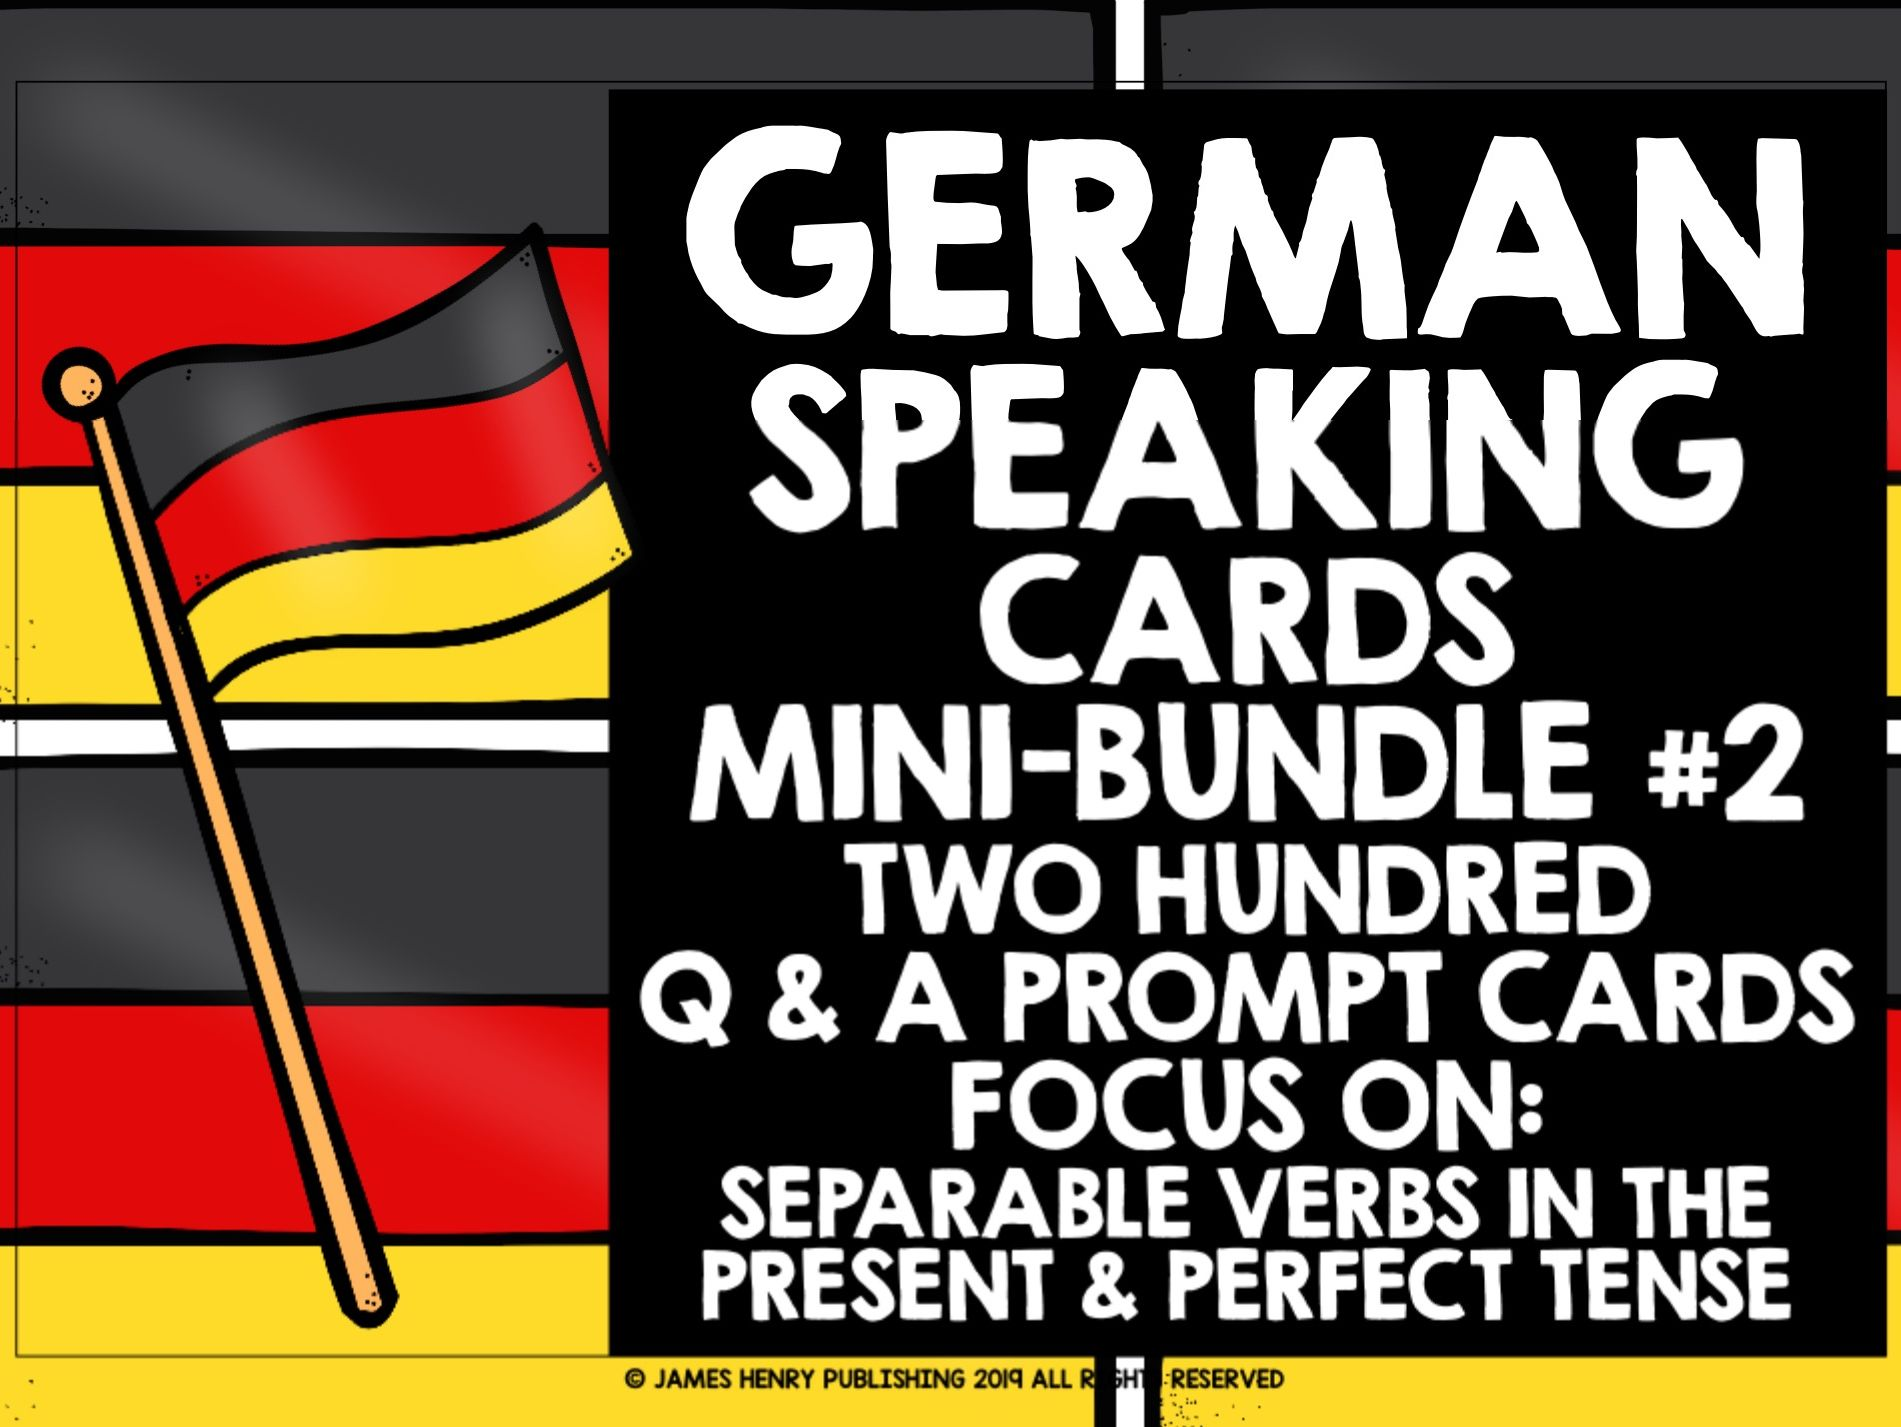 GERMAN SPEAKING PRACTICE MINI-BUNDLE #2